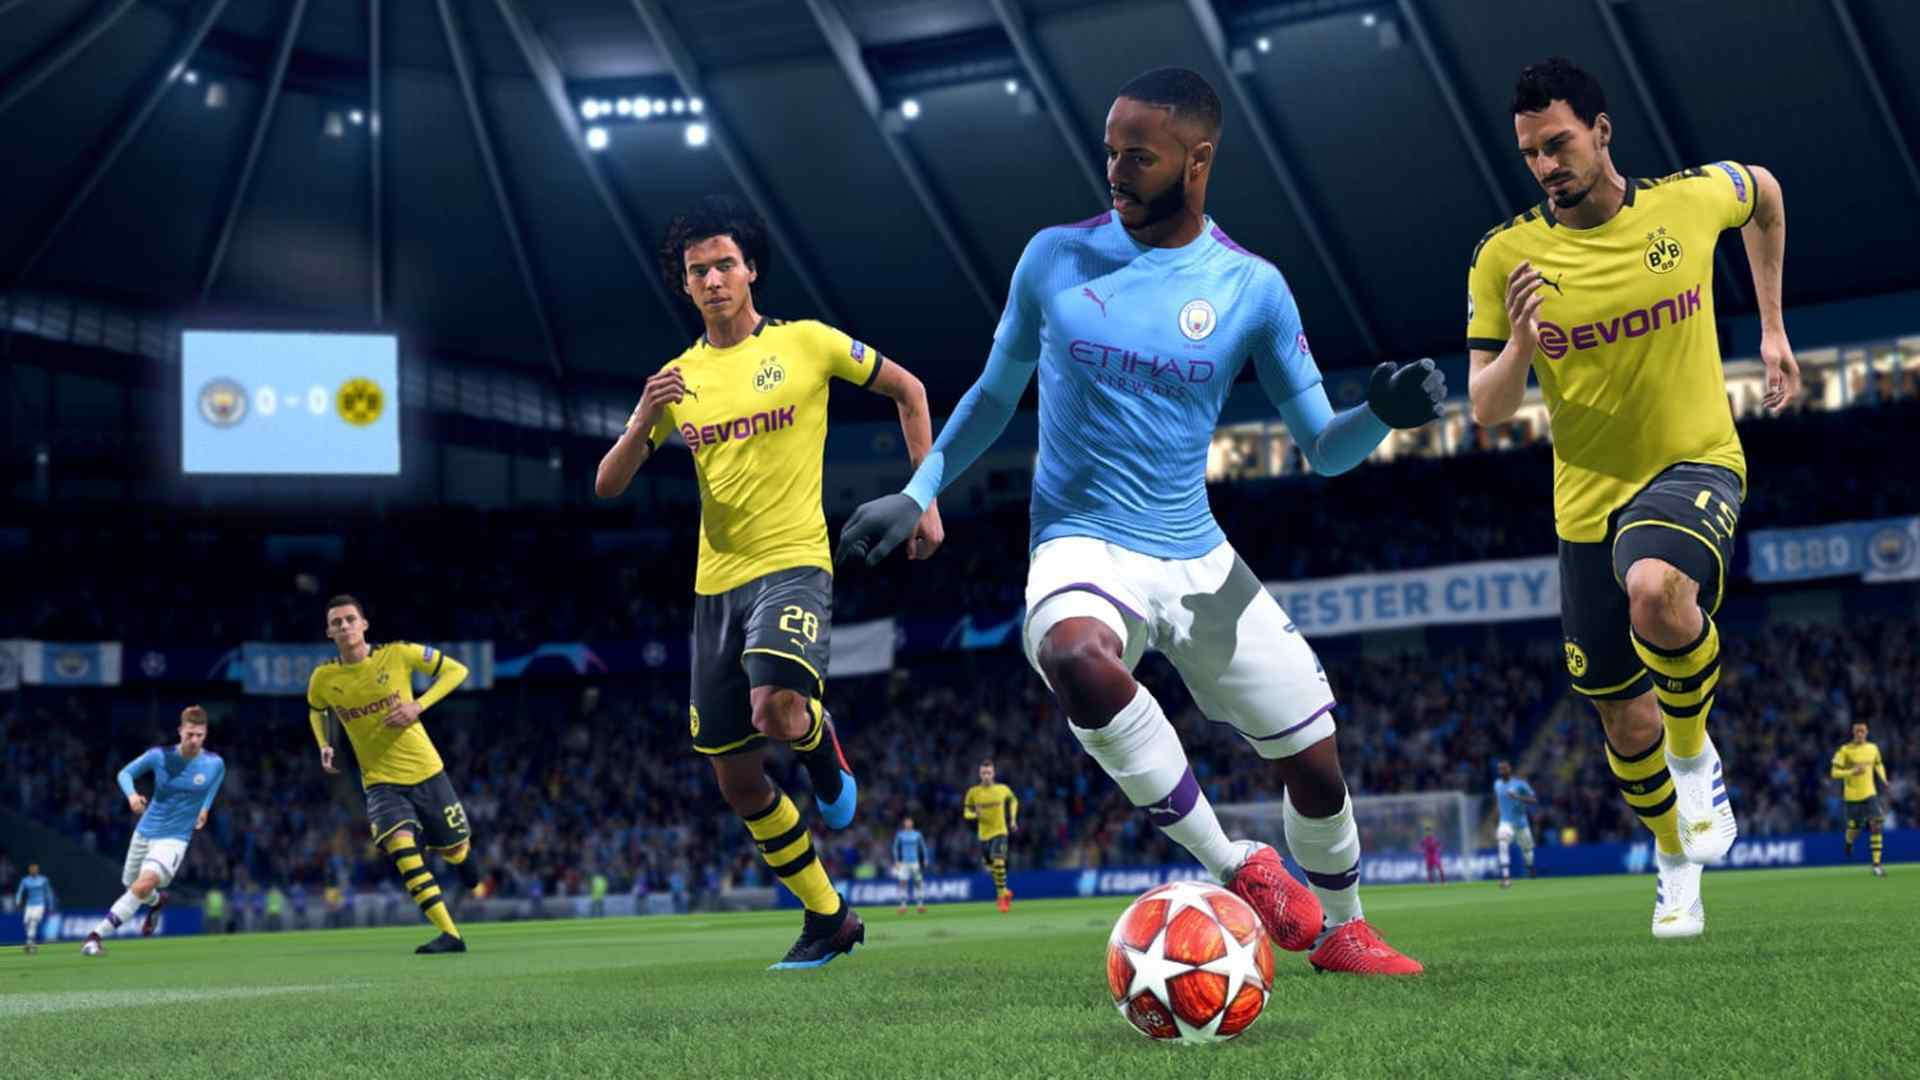 FIFA 21 Lays Out Mode Reveals For August, So Don't Expect Too Much at EA Play